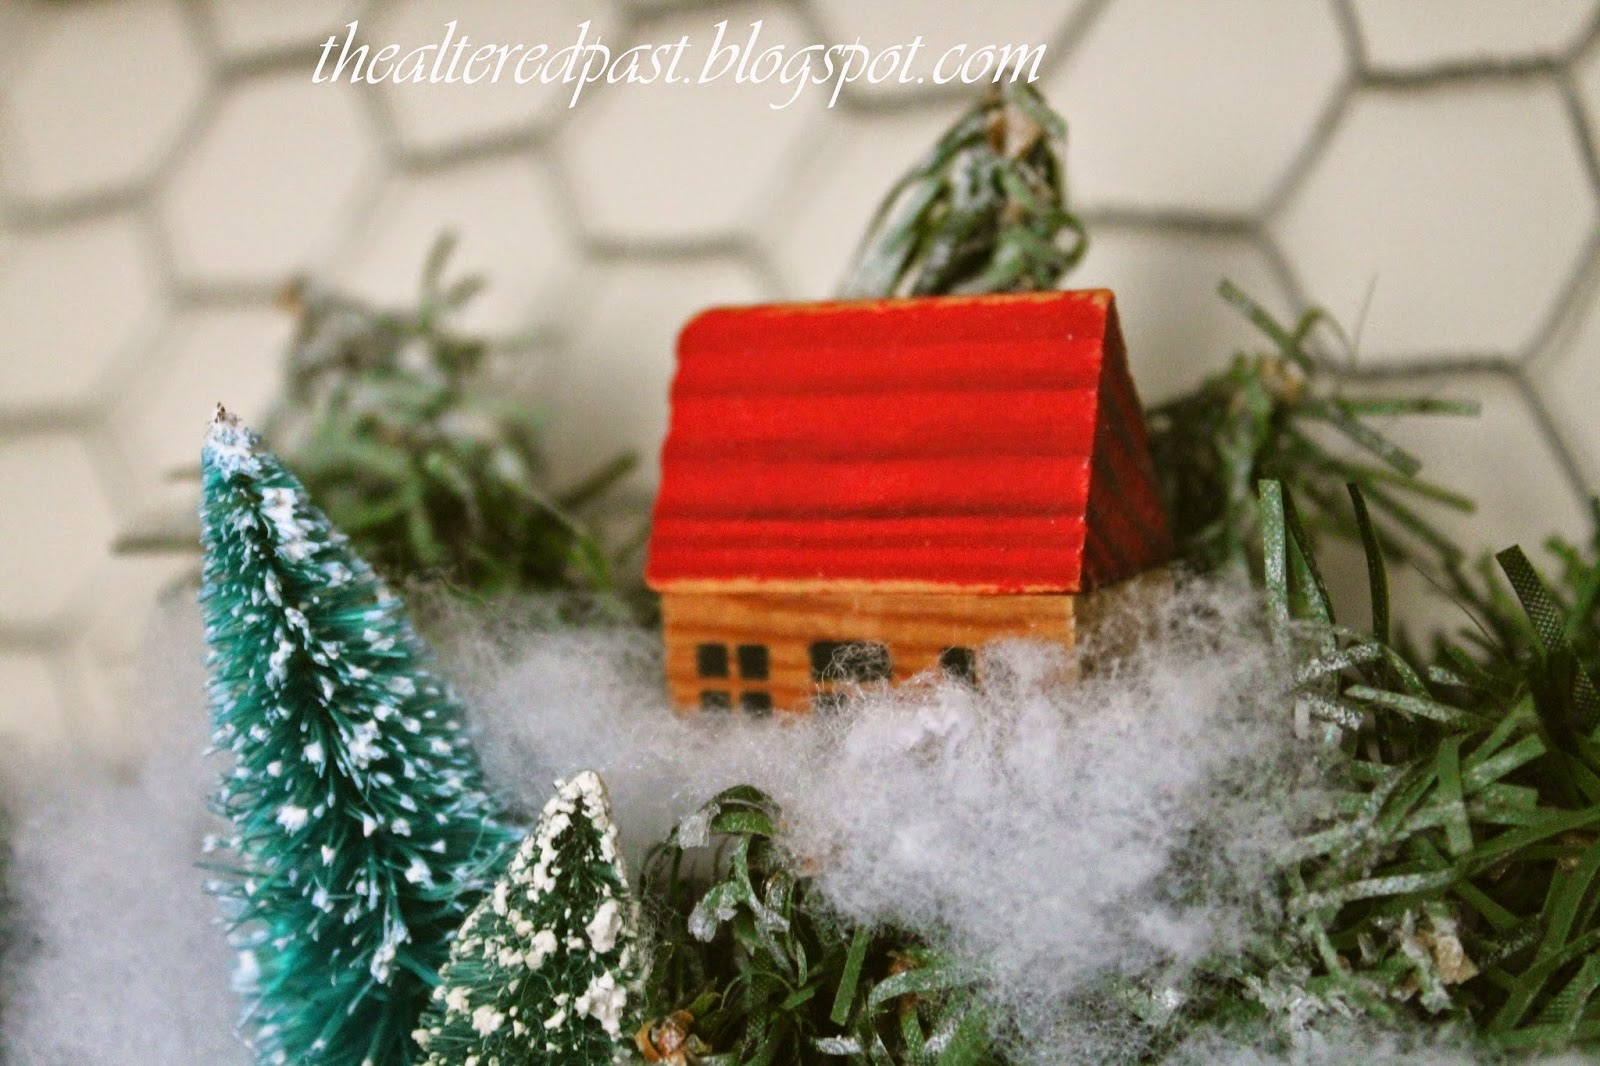 vintage farm village christmas wreath, the altered past blog